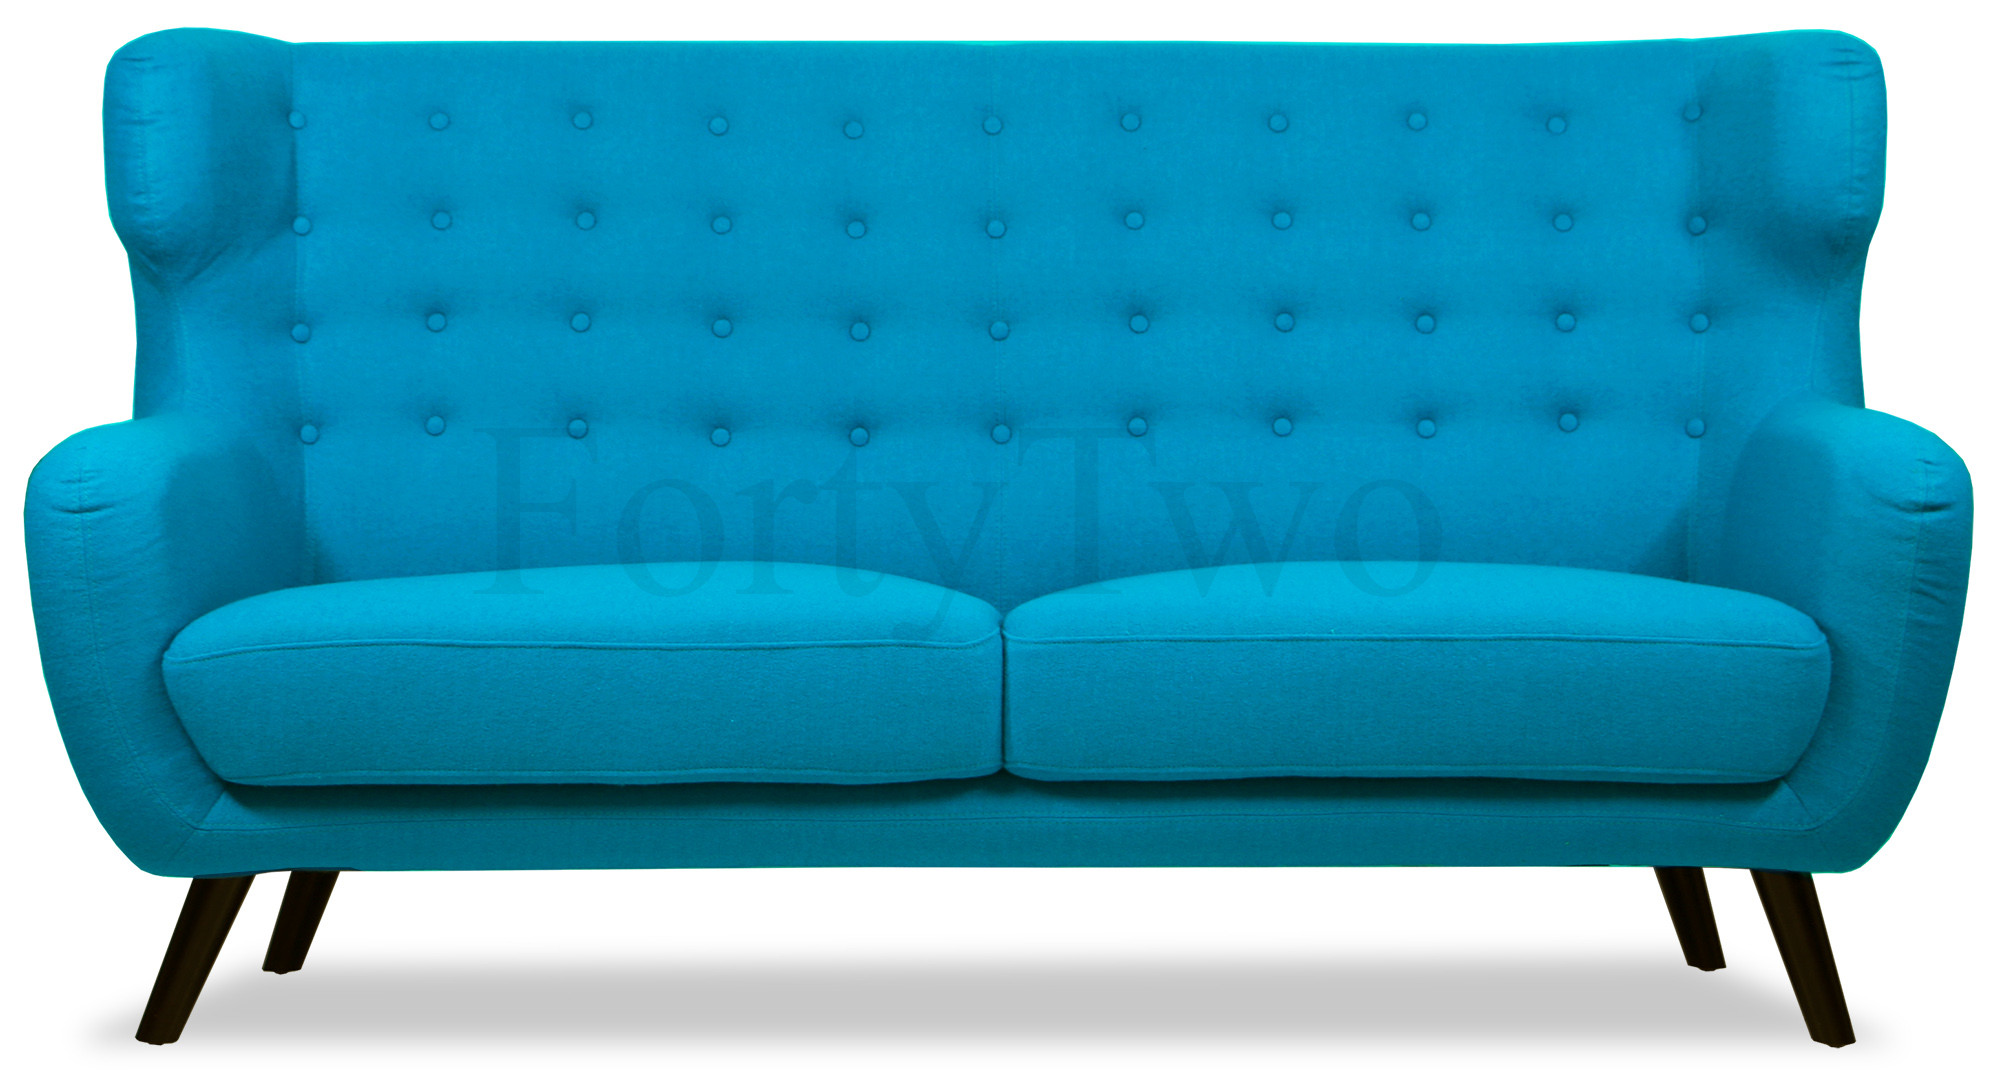 Replica wingback designer 3 seater sofa in aqua designer for Design sofa replica